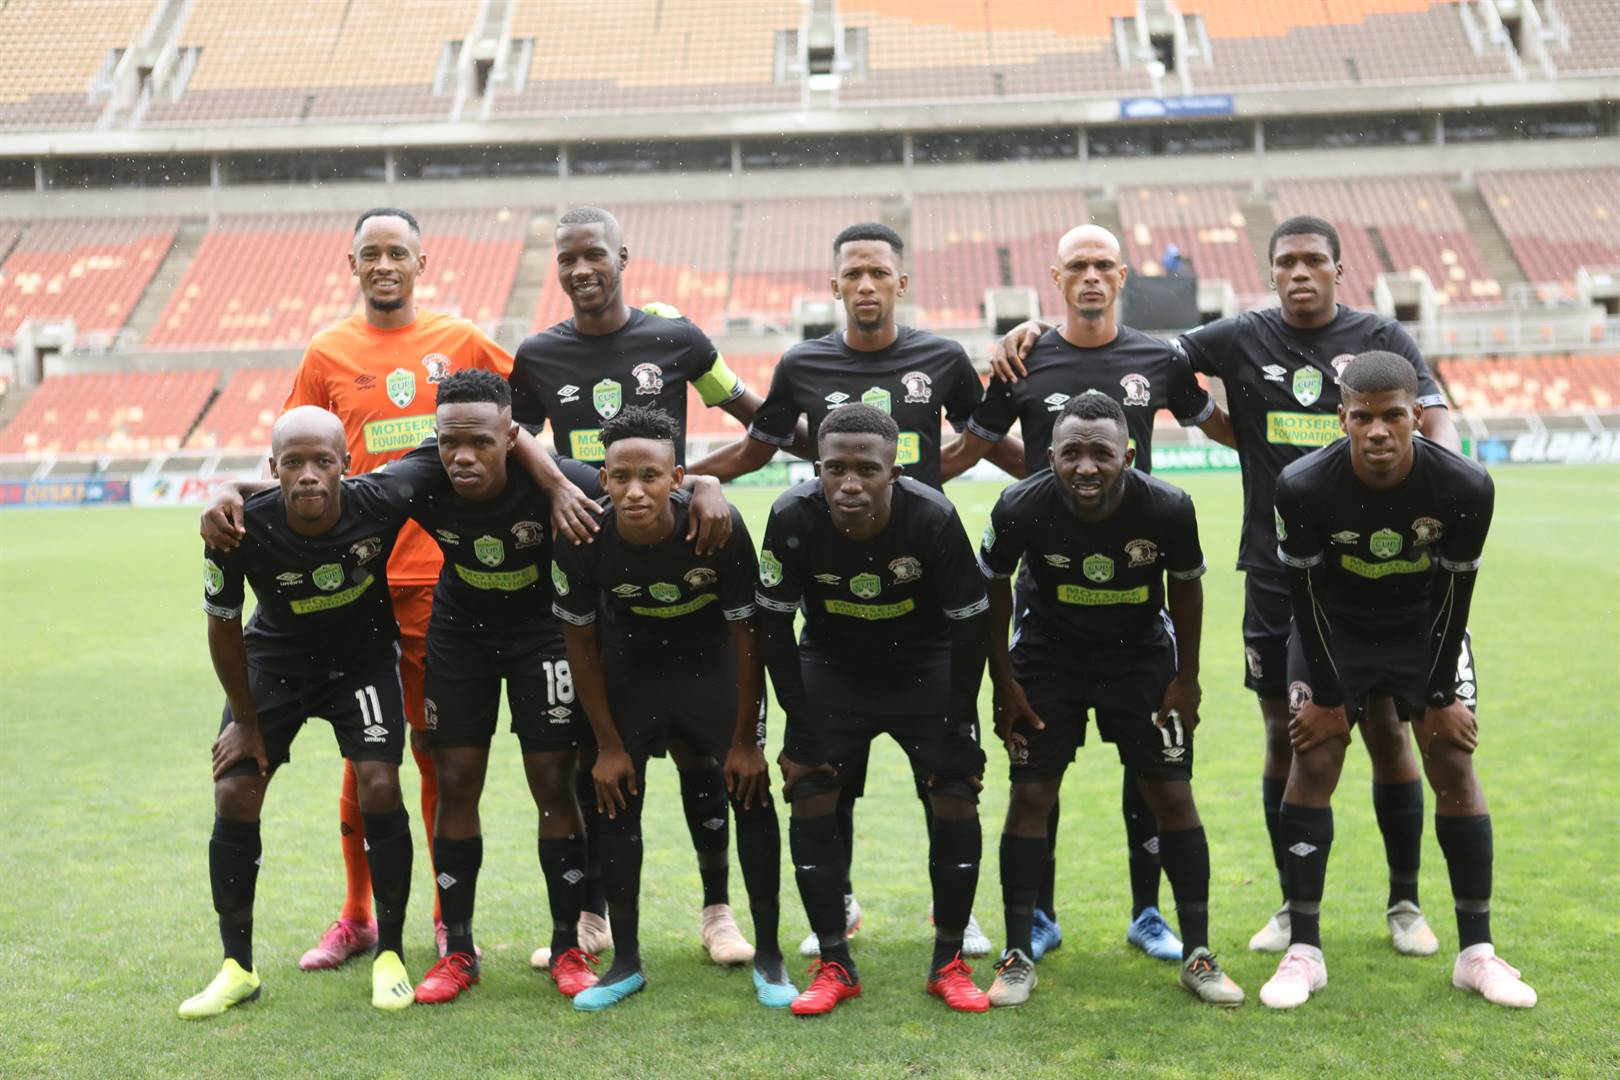 Hungry Lions from Kimberley reached the Nedbank Cup Last 16 in the previous campaign. Picture: Philip Maeta / Gallo Images